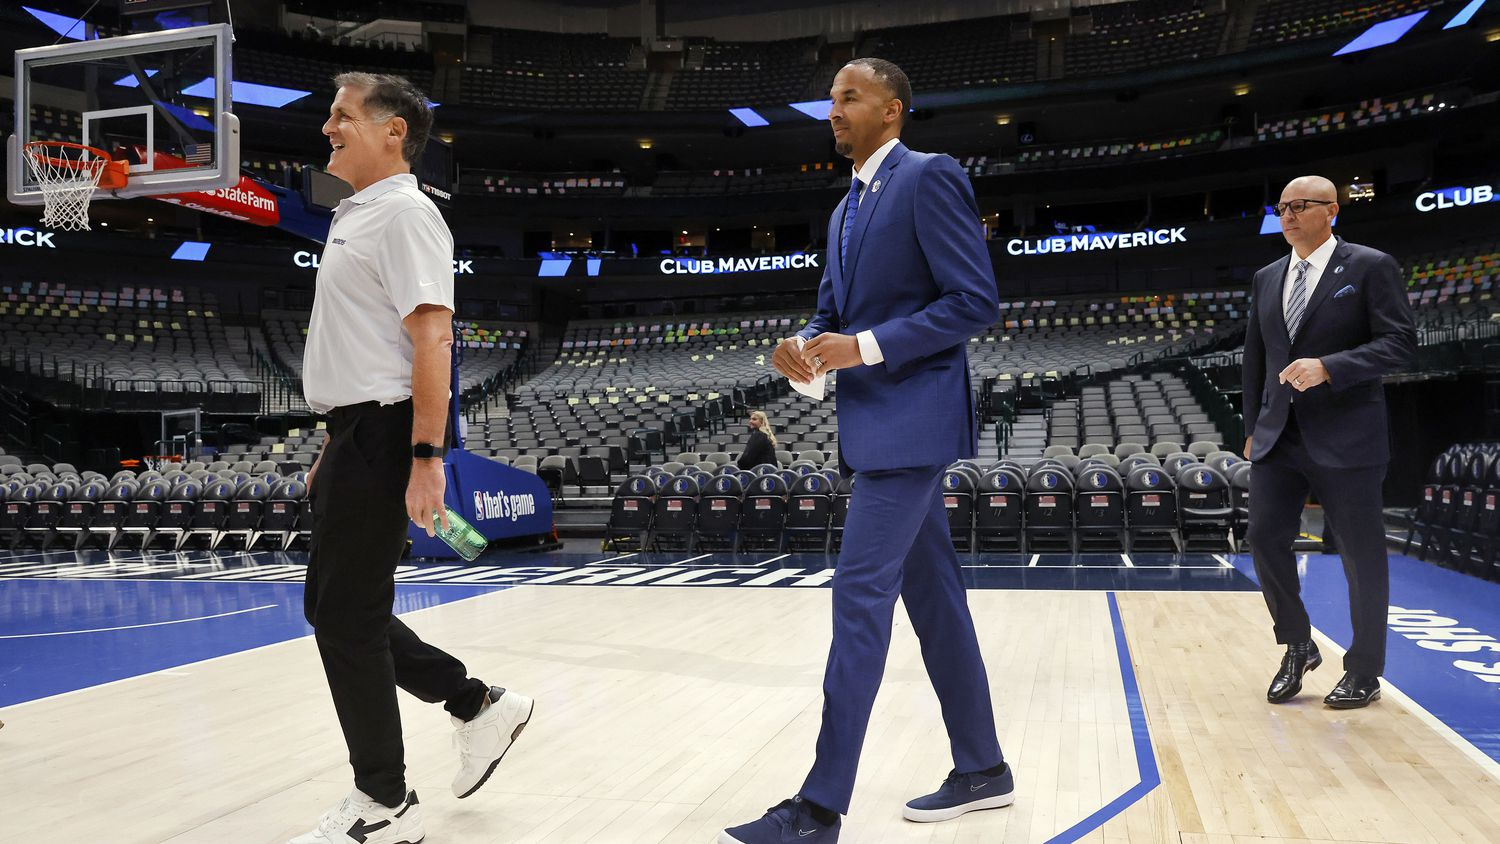 Dallas Mavericks owner Mark Cuban (left), new general manager Nico Harrison (center), and new head coach Jason Kidd arrive for a press conference to formally introduce them at the American Airlines Center, Thursday, July 15, 2021. (Tom Fox/The Dallas Morning News)